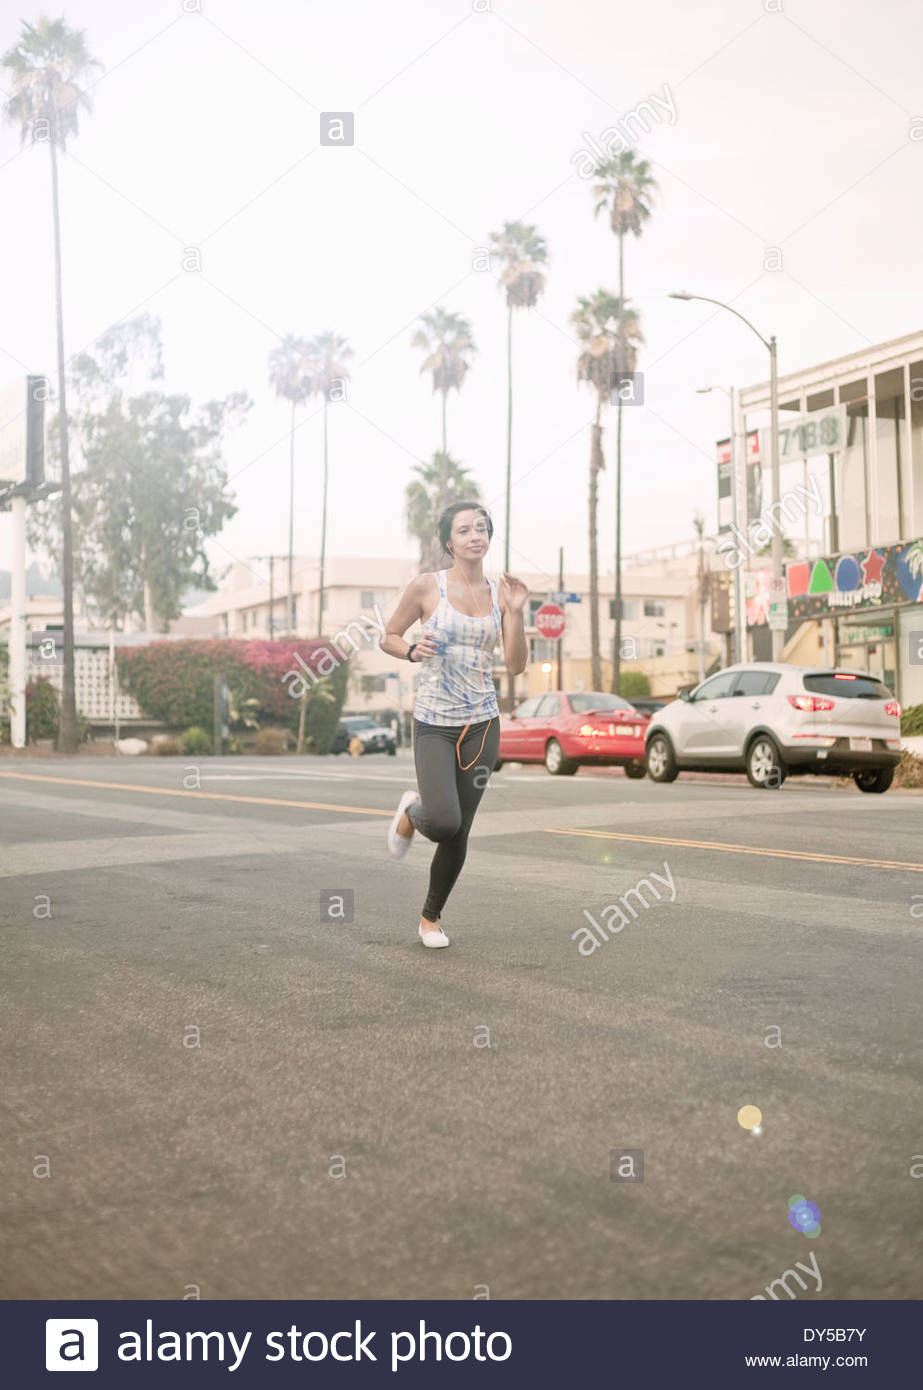 Young athletic woman running on road - Stock Image